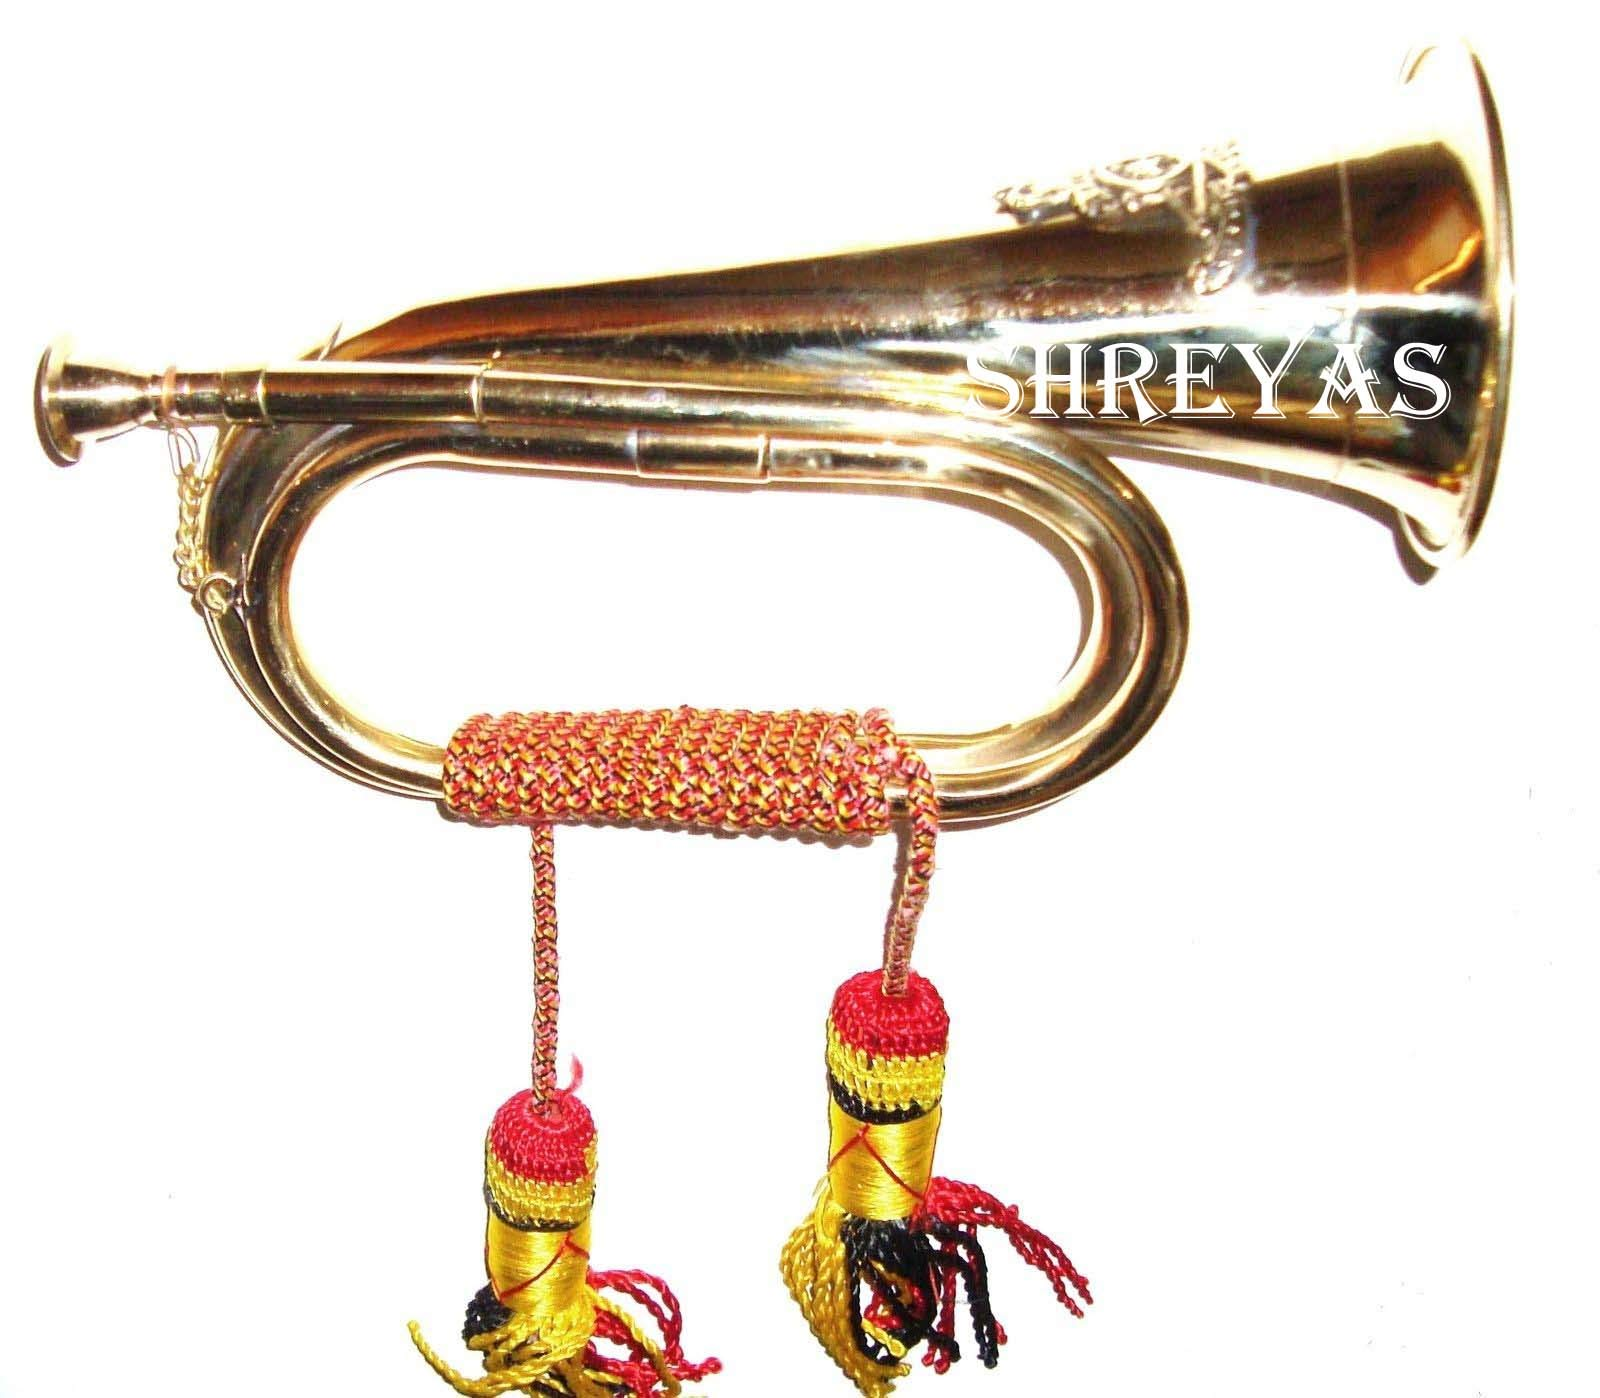 SC EXPORTS Boy Scout Brass and Copper Blowing Bugle Attack War Command Signal Horn 10.6'' Inch with Beautiful Colourful Rope Binding